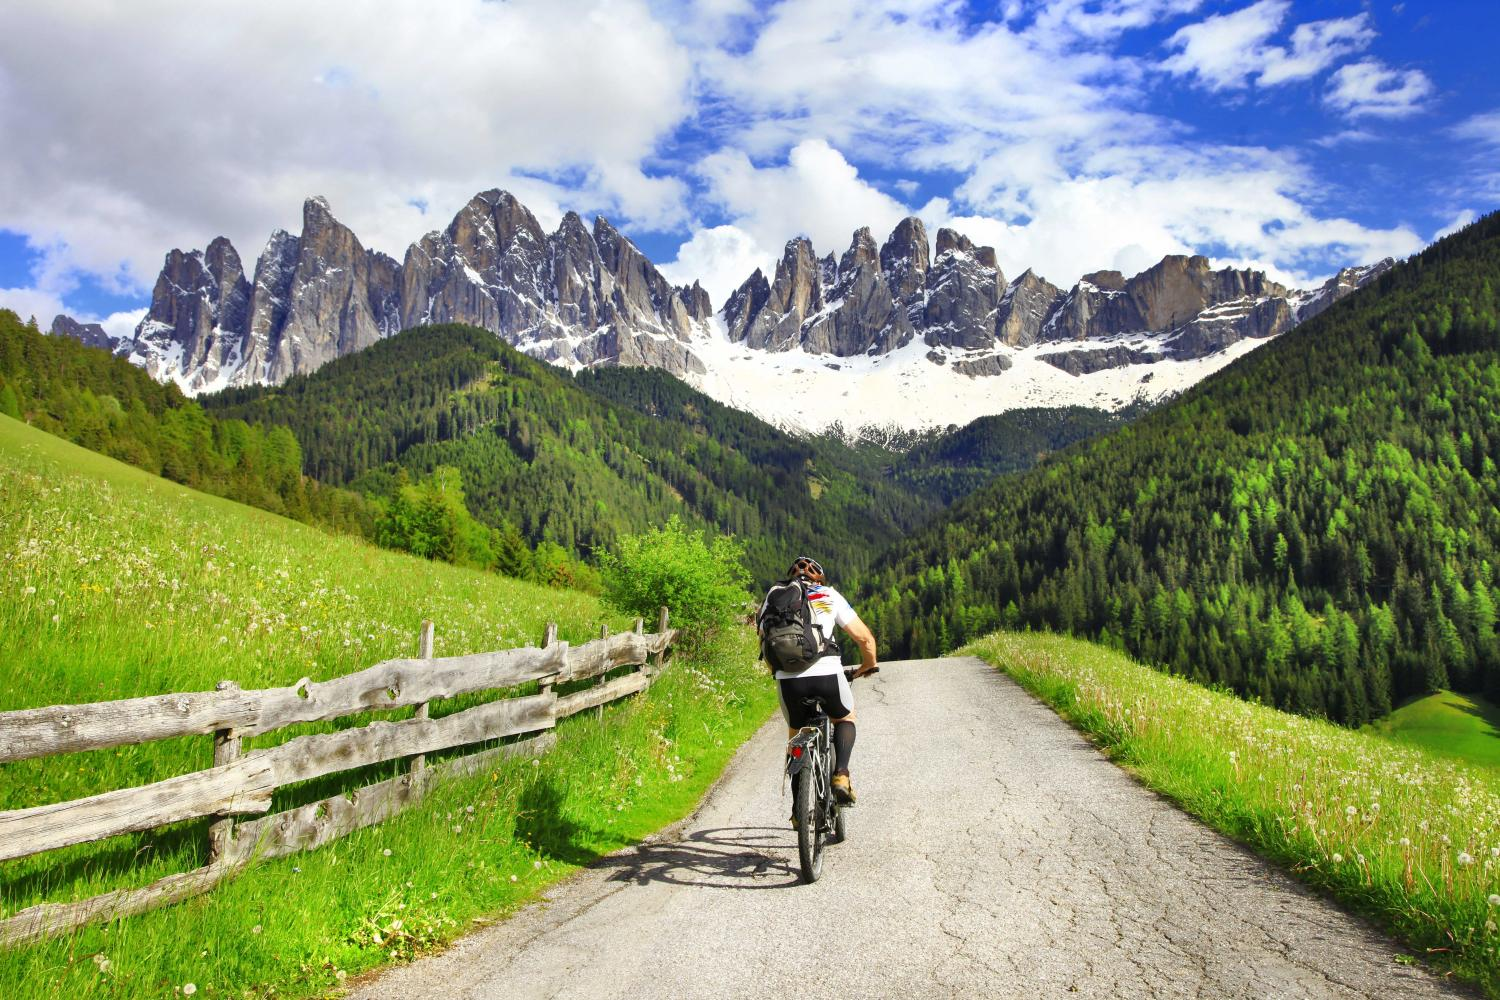 cycling on bike path in the mountains